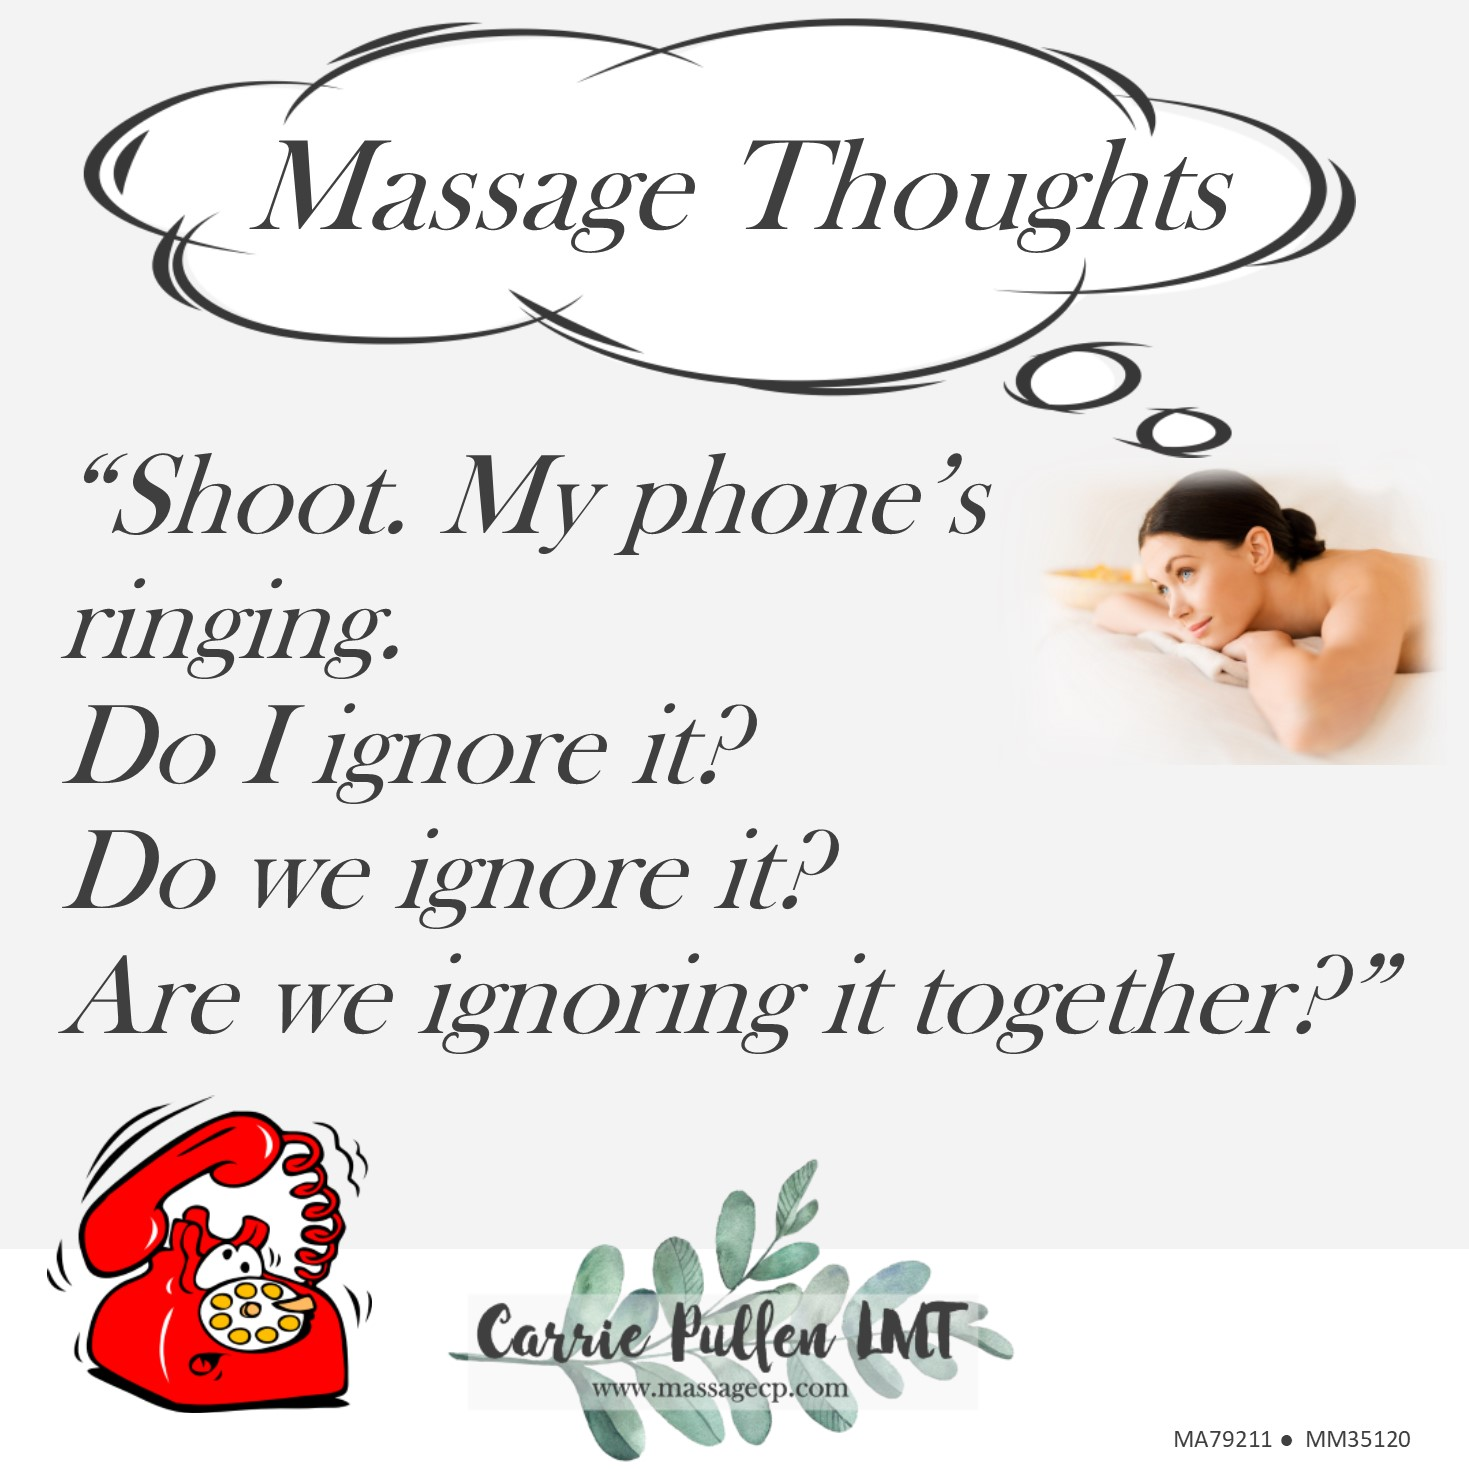 Massage Thoughts....phone